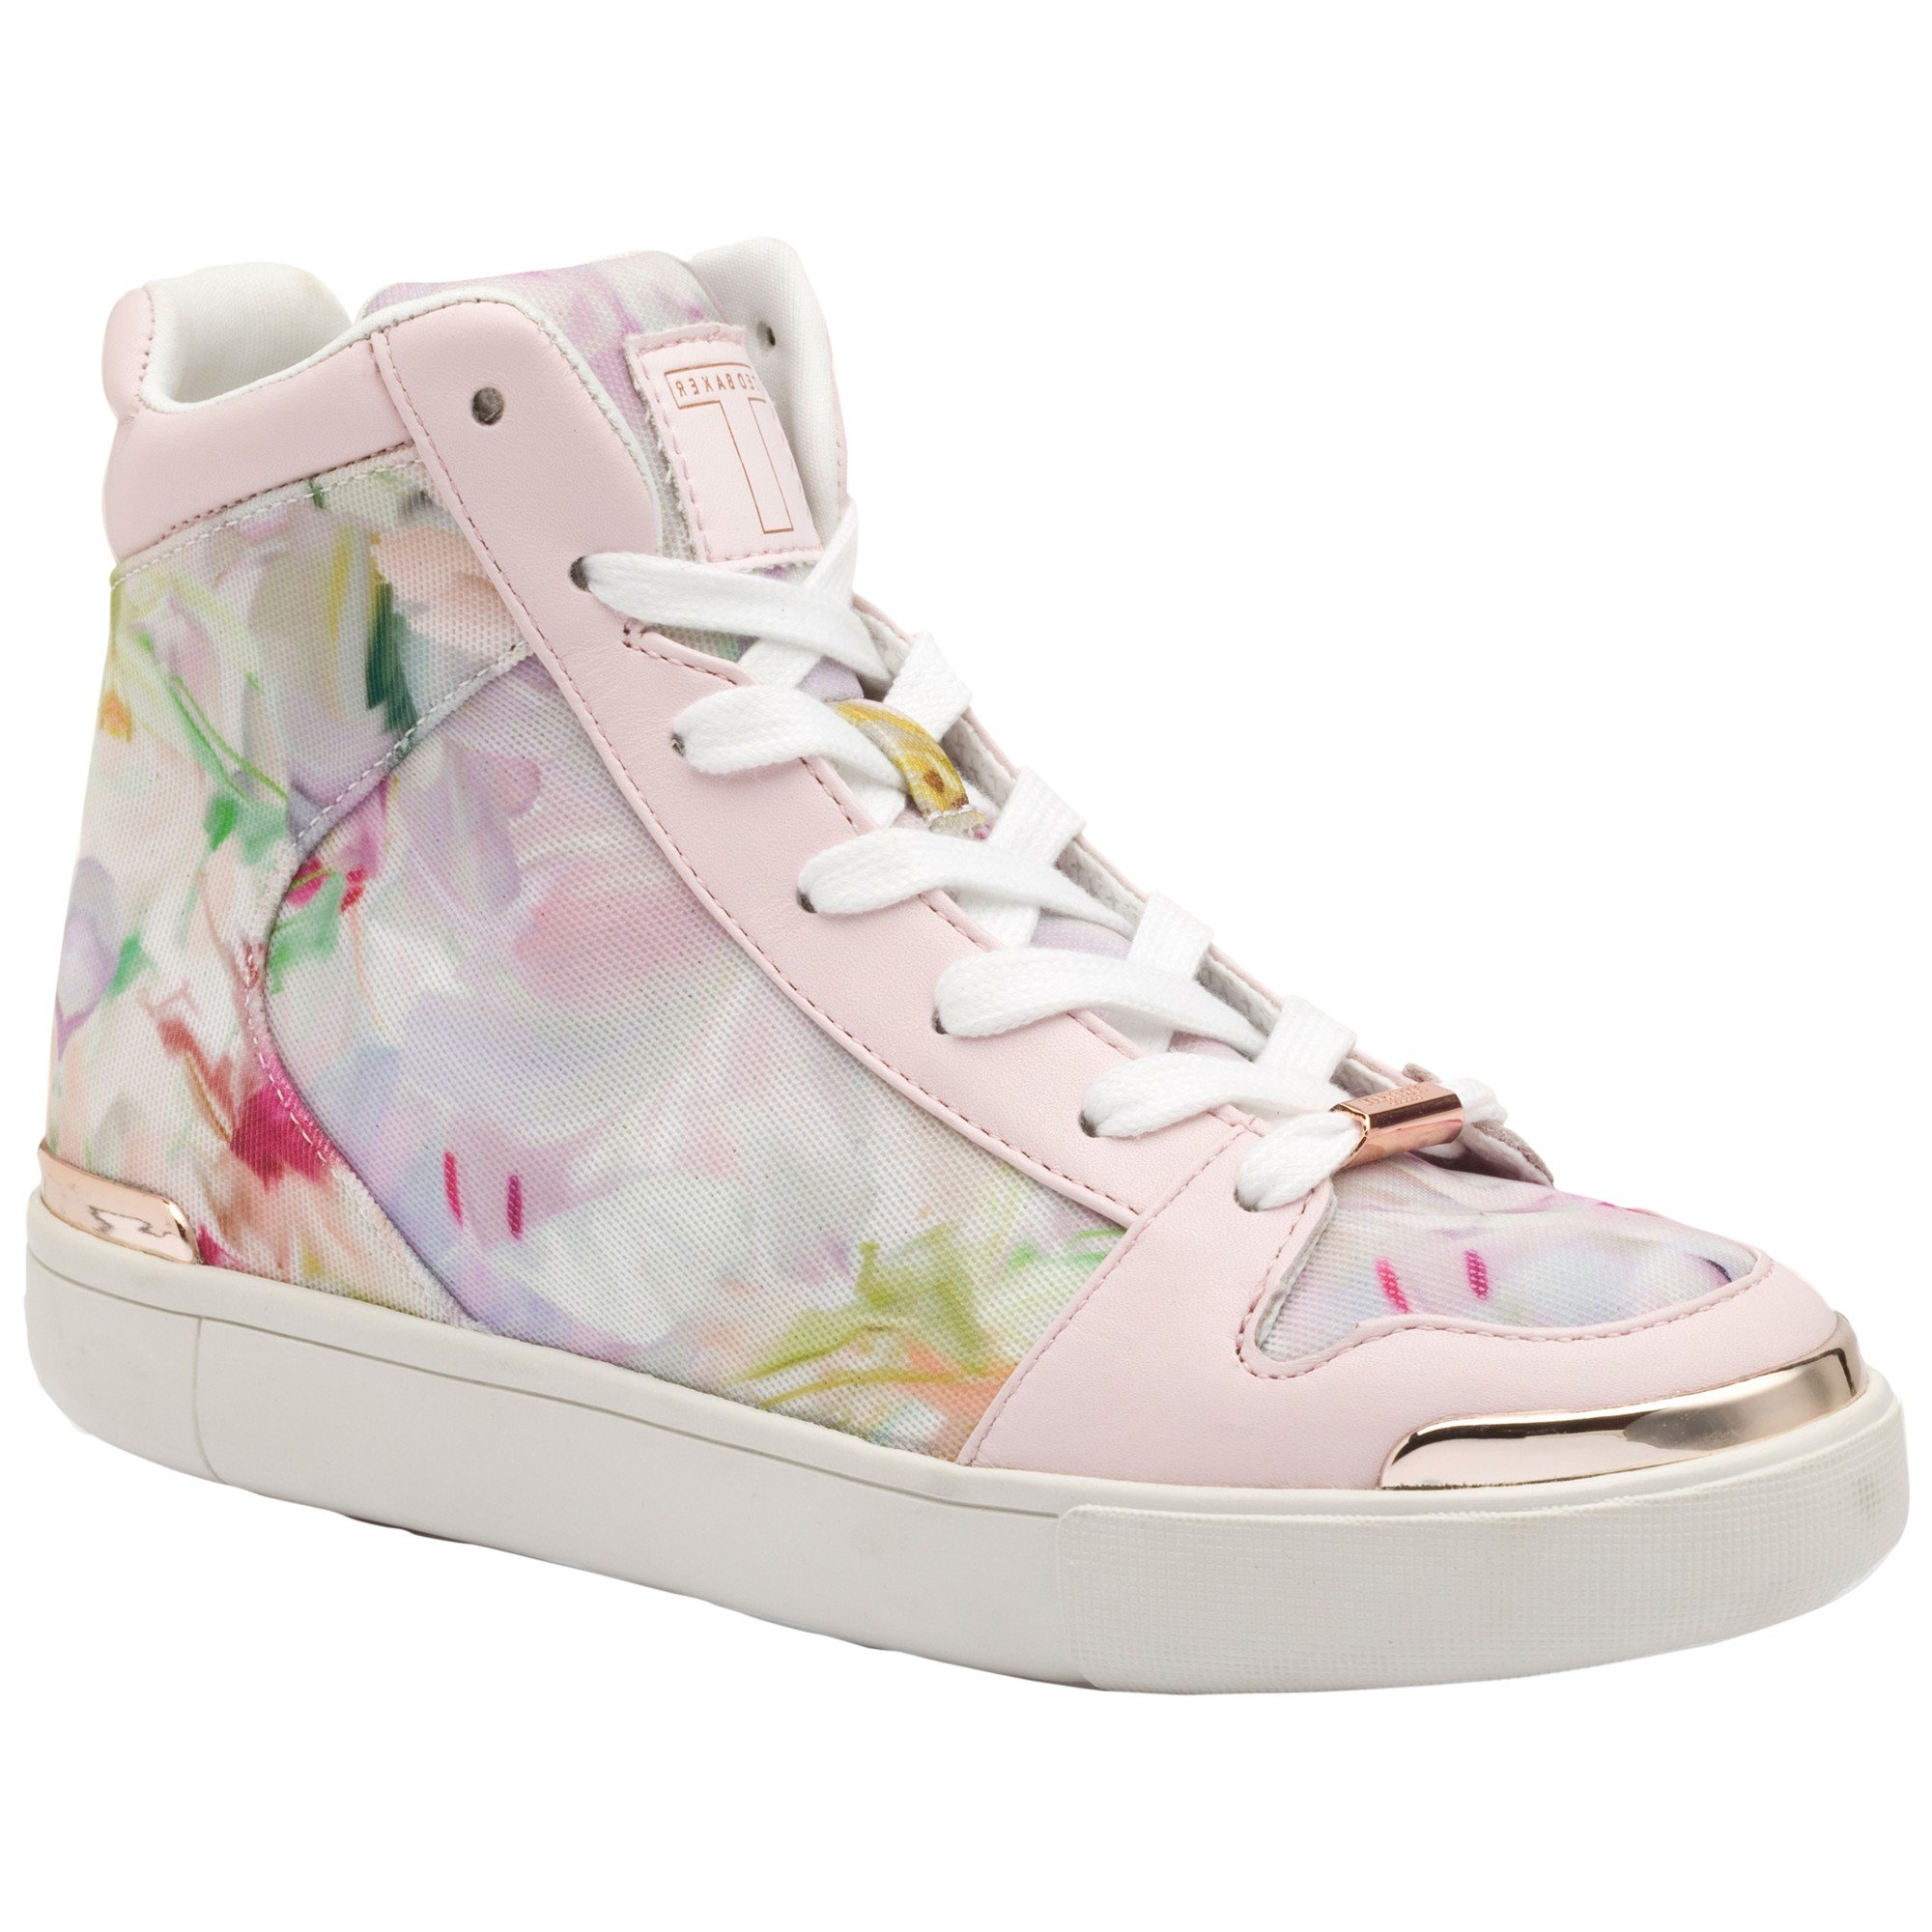 6796bd30e152 Ted Baker Paryna High Top Flat Trainers in Pink - Lyst